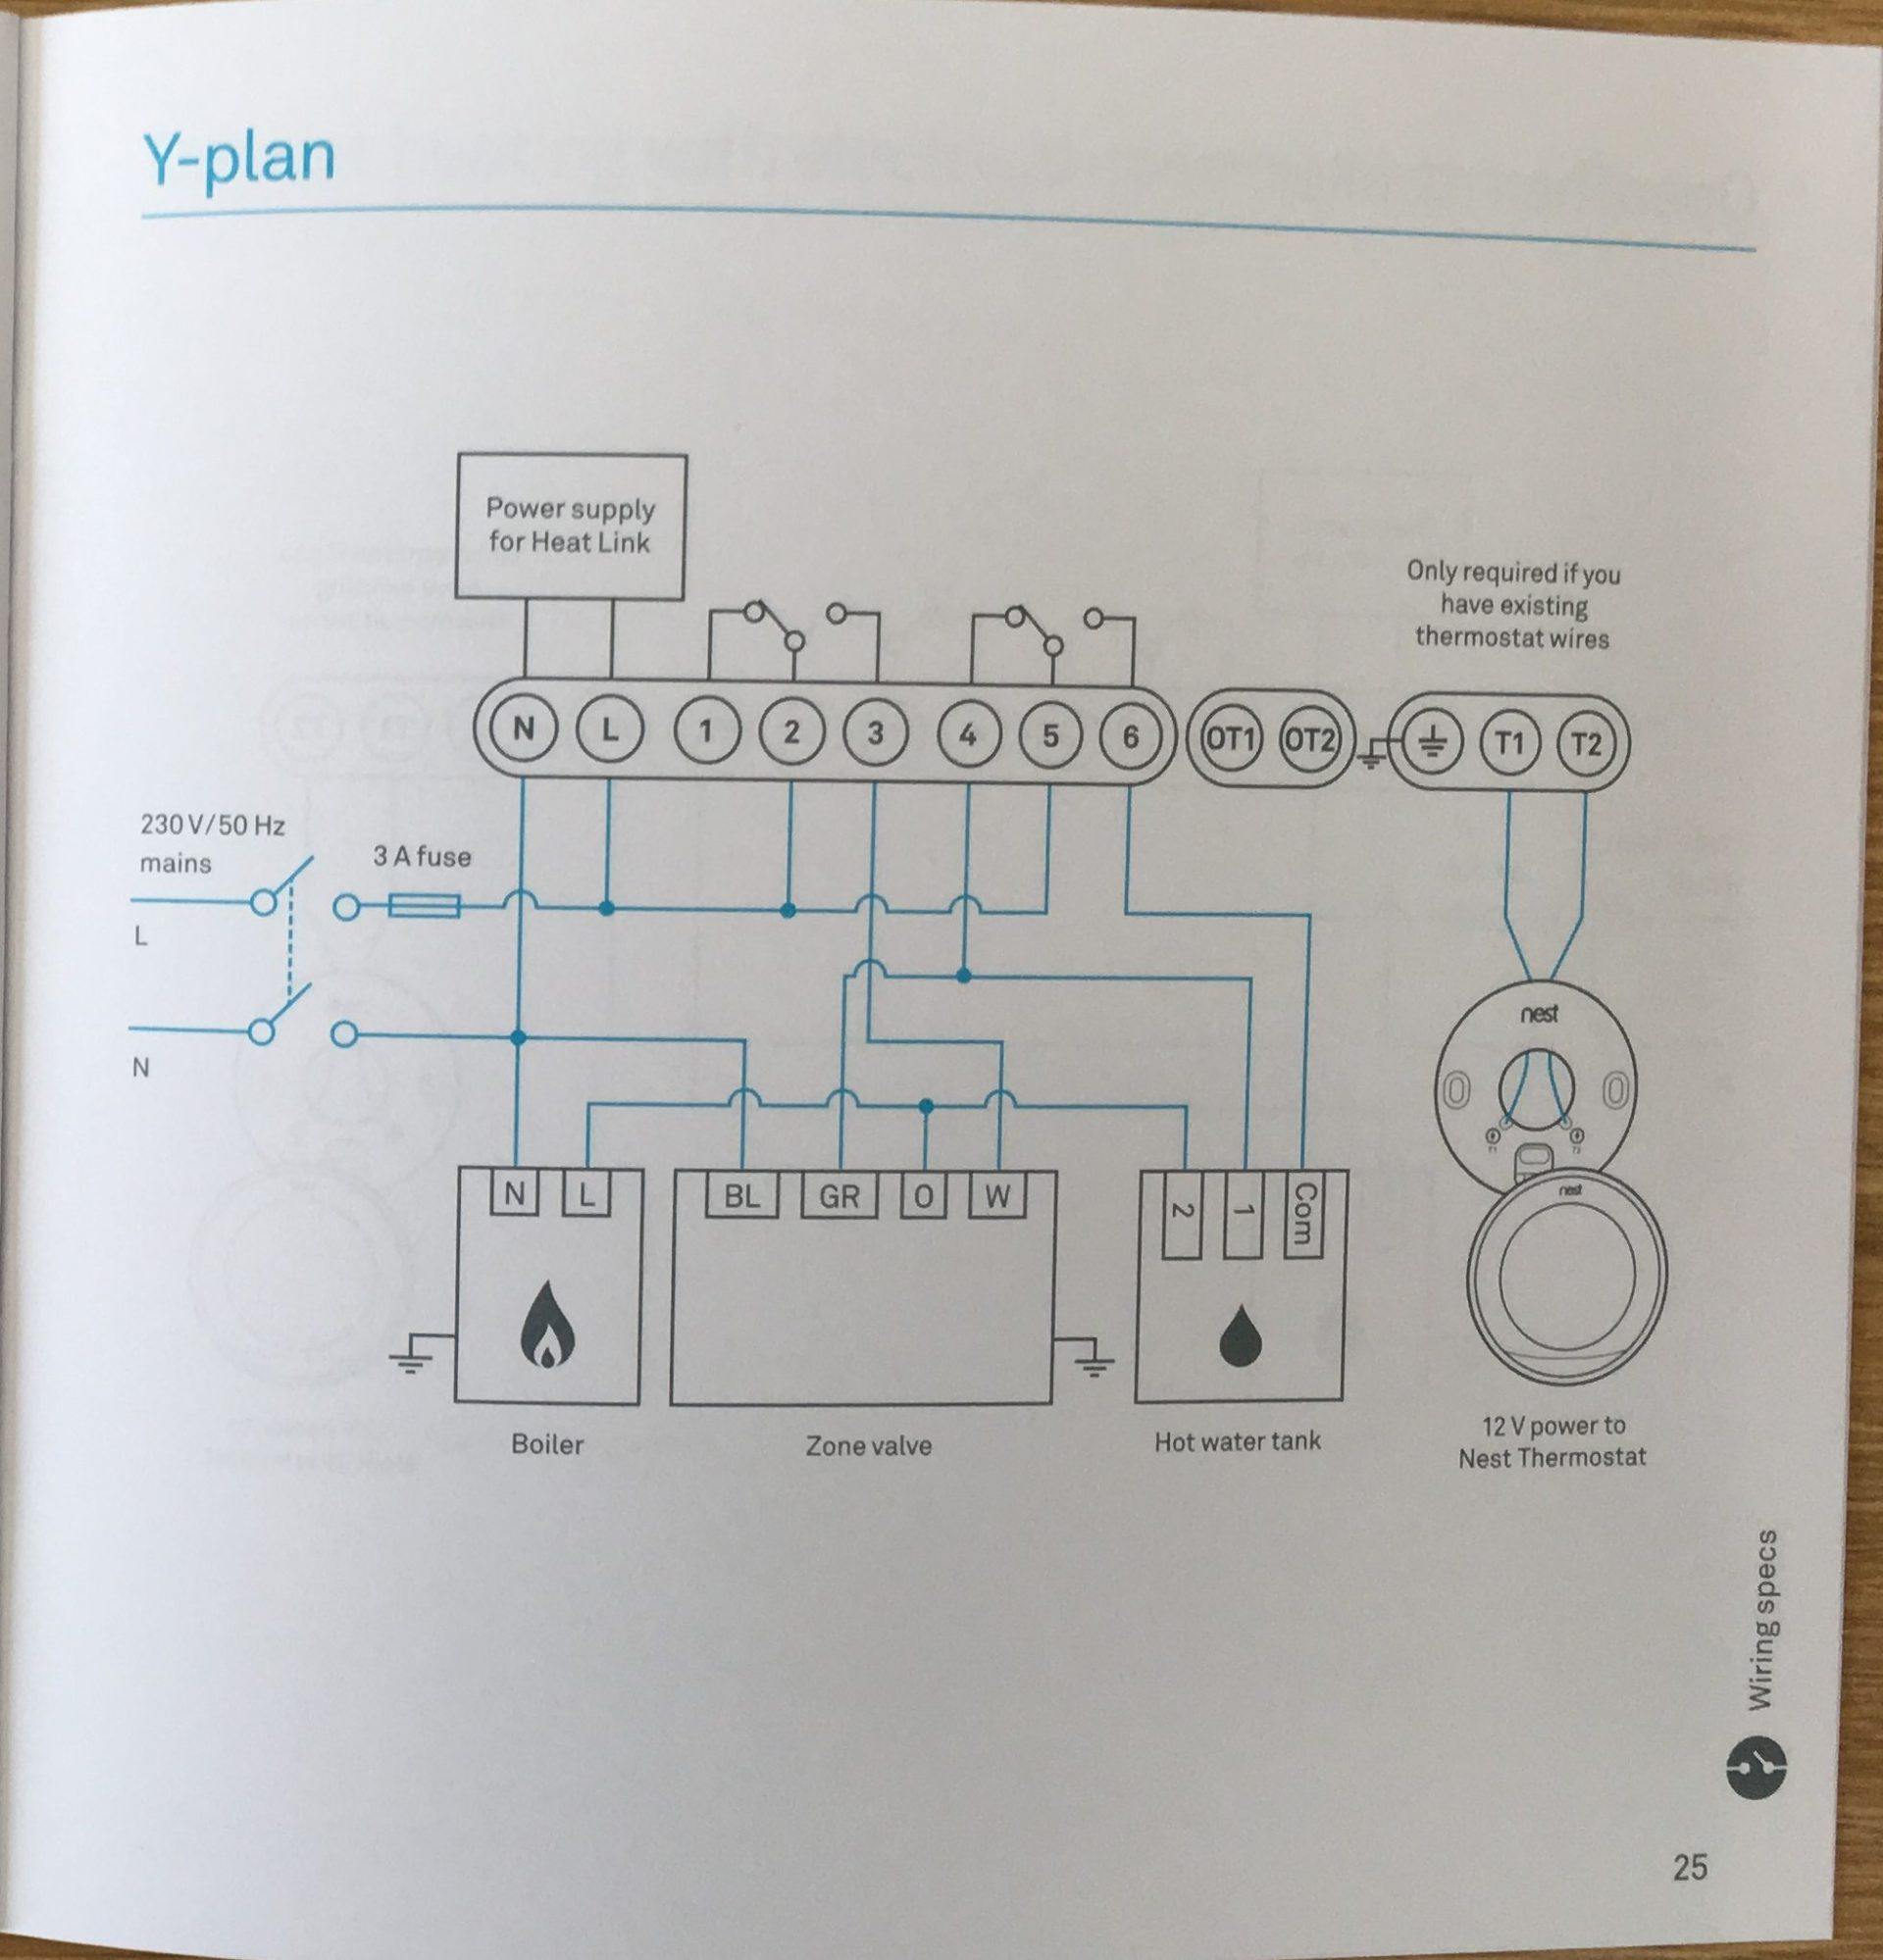 How To Install The Nest Learning Thermostat (3Rd Gen) In A Y-Plan - Wiring Diagram For Nest Thermostat 3Rd Generation